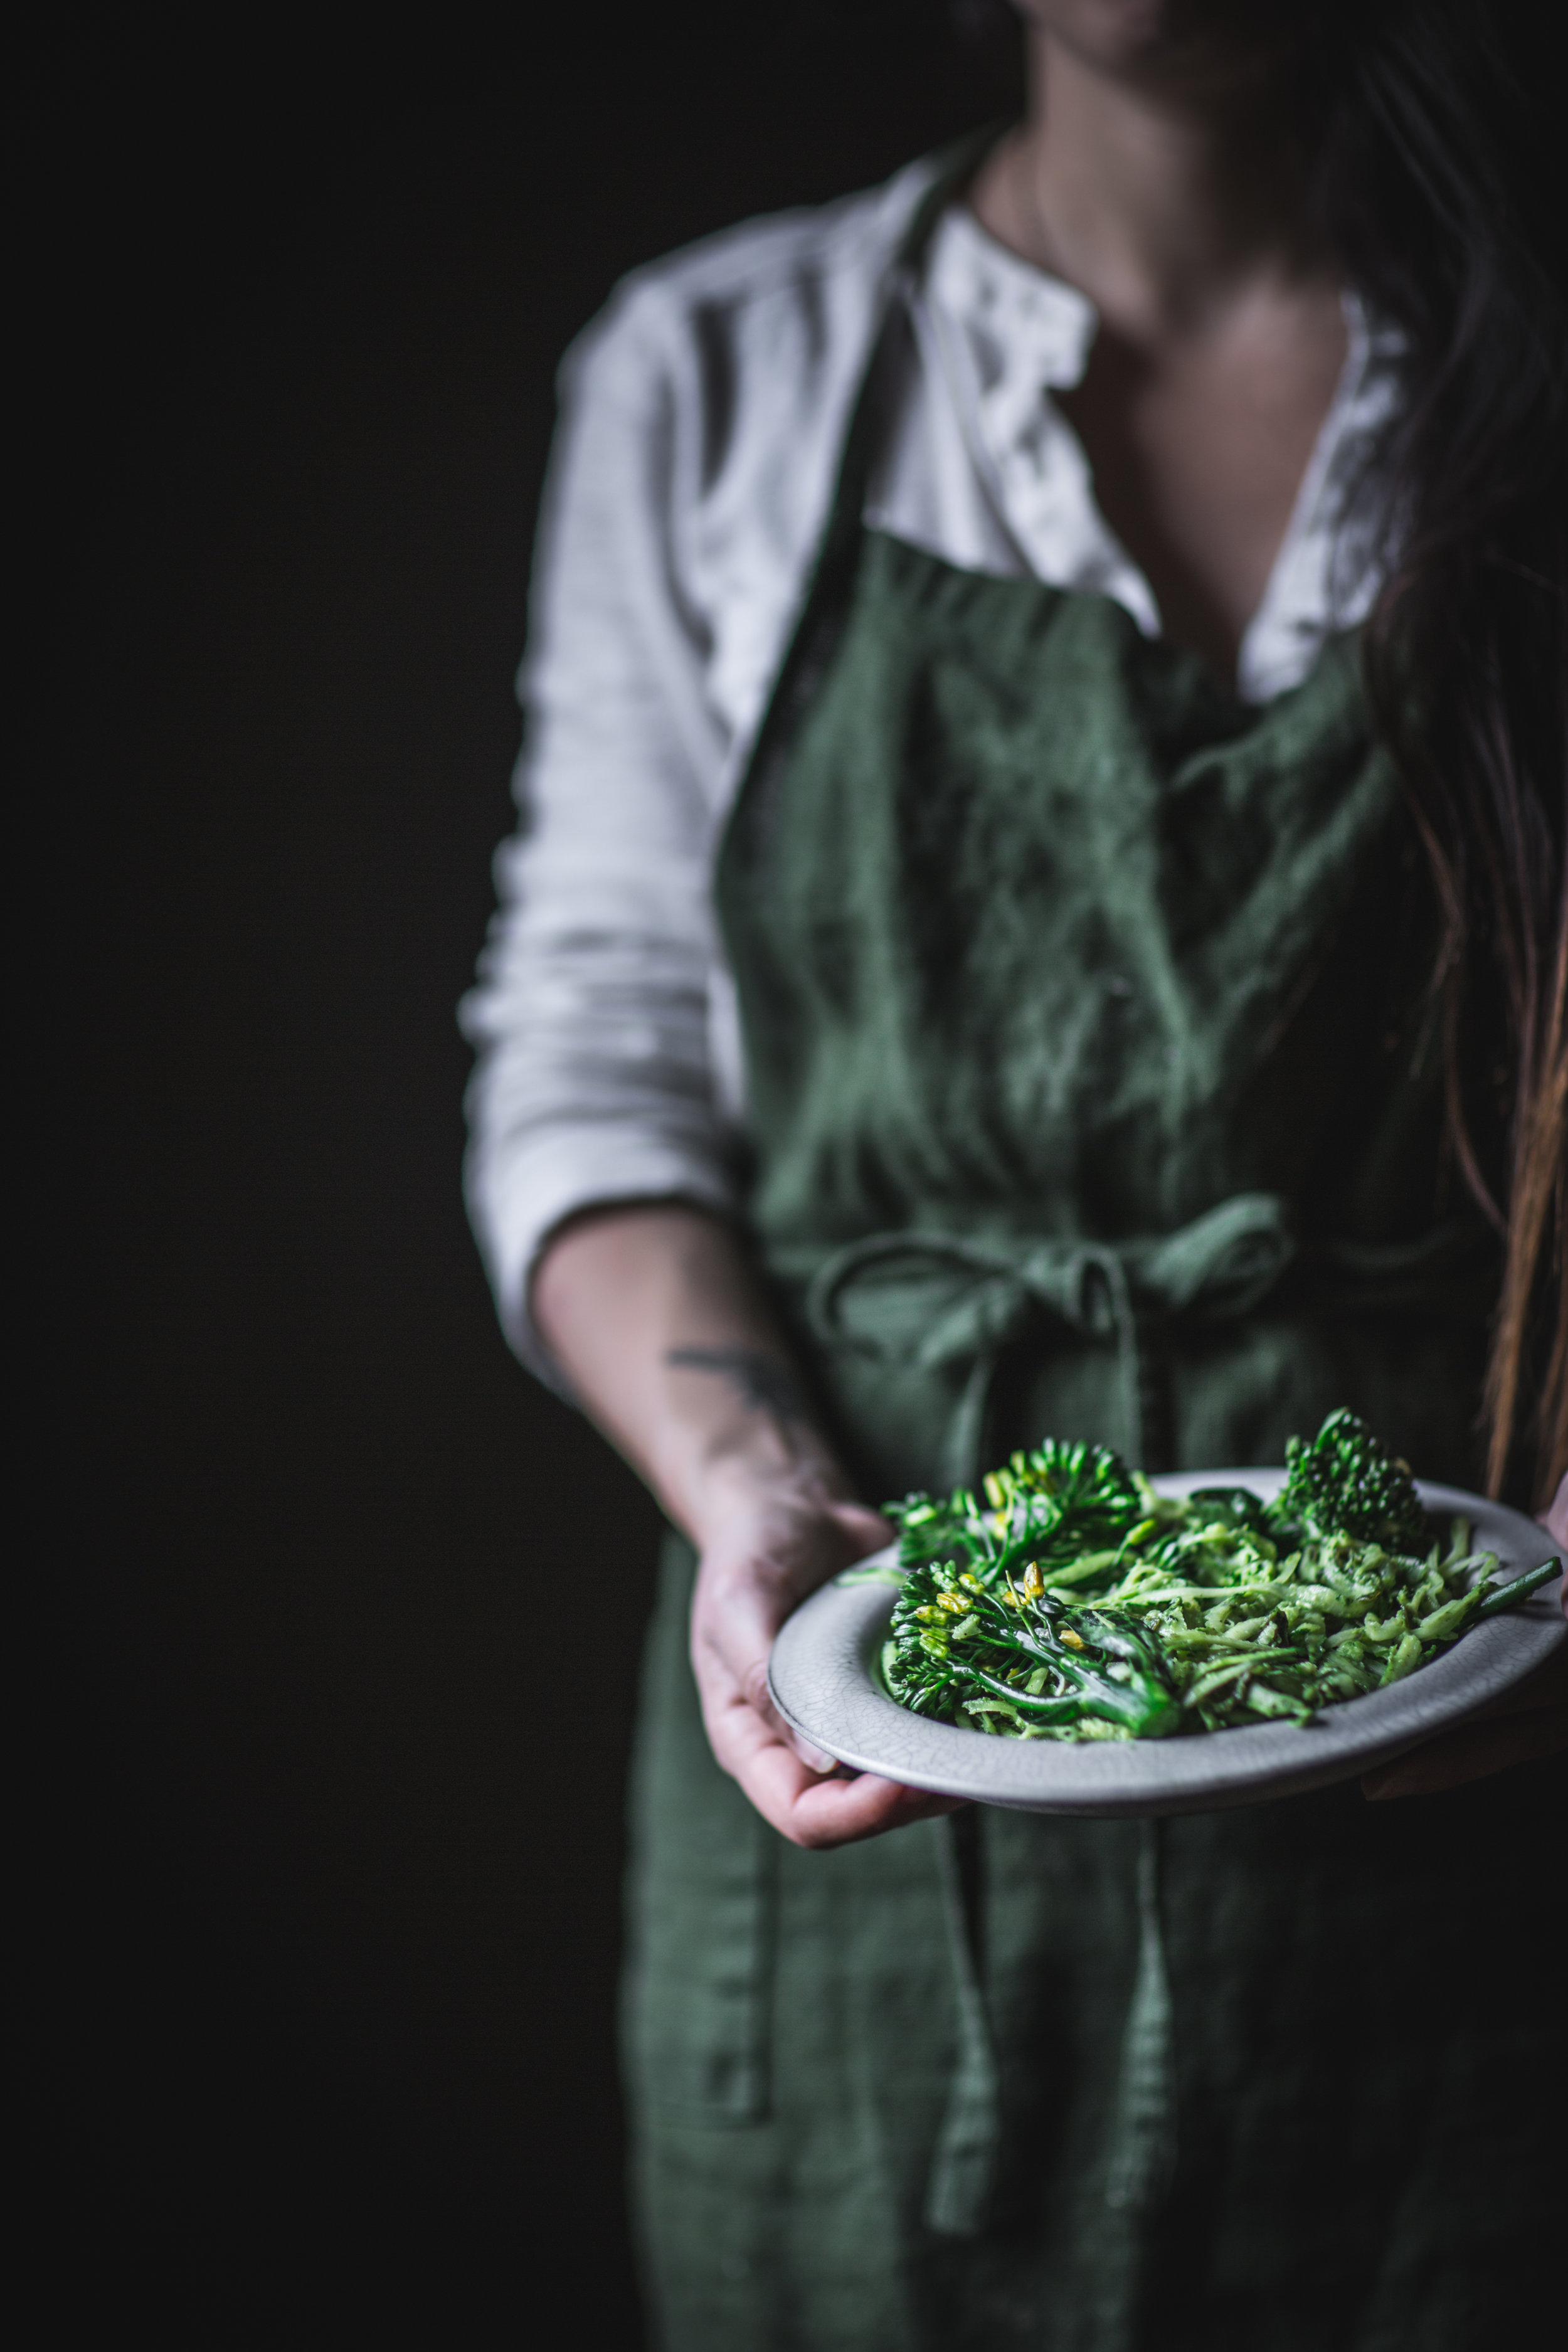 Food Photography Editing in Adobe Lightroom Online Course